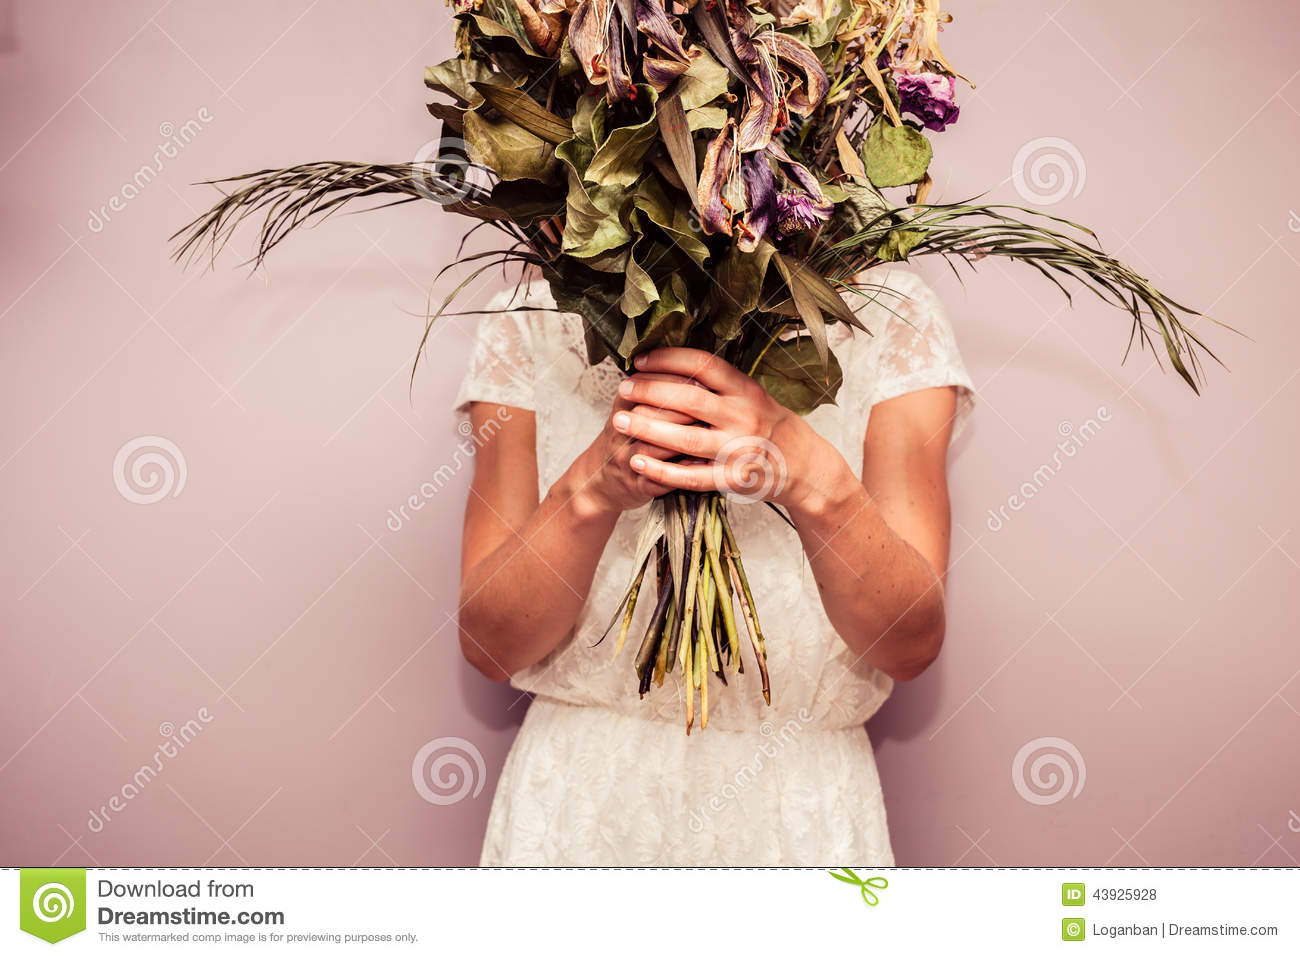 Young Woman Holding Bouquet Of Dead Flowers Stock Photo Image Of